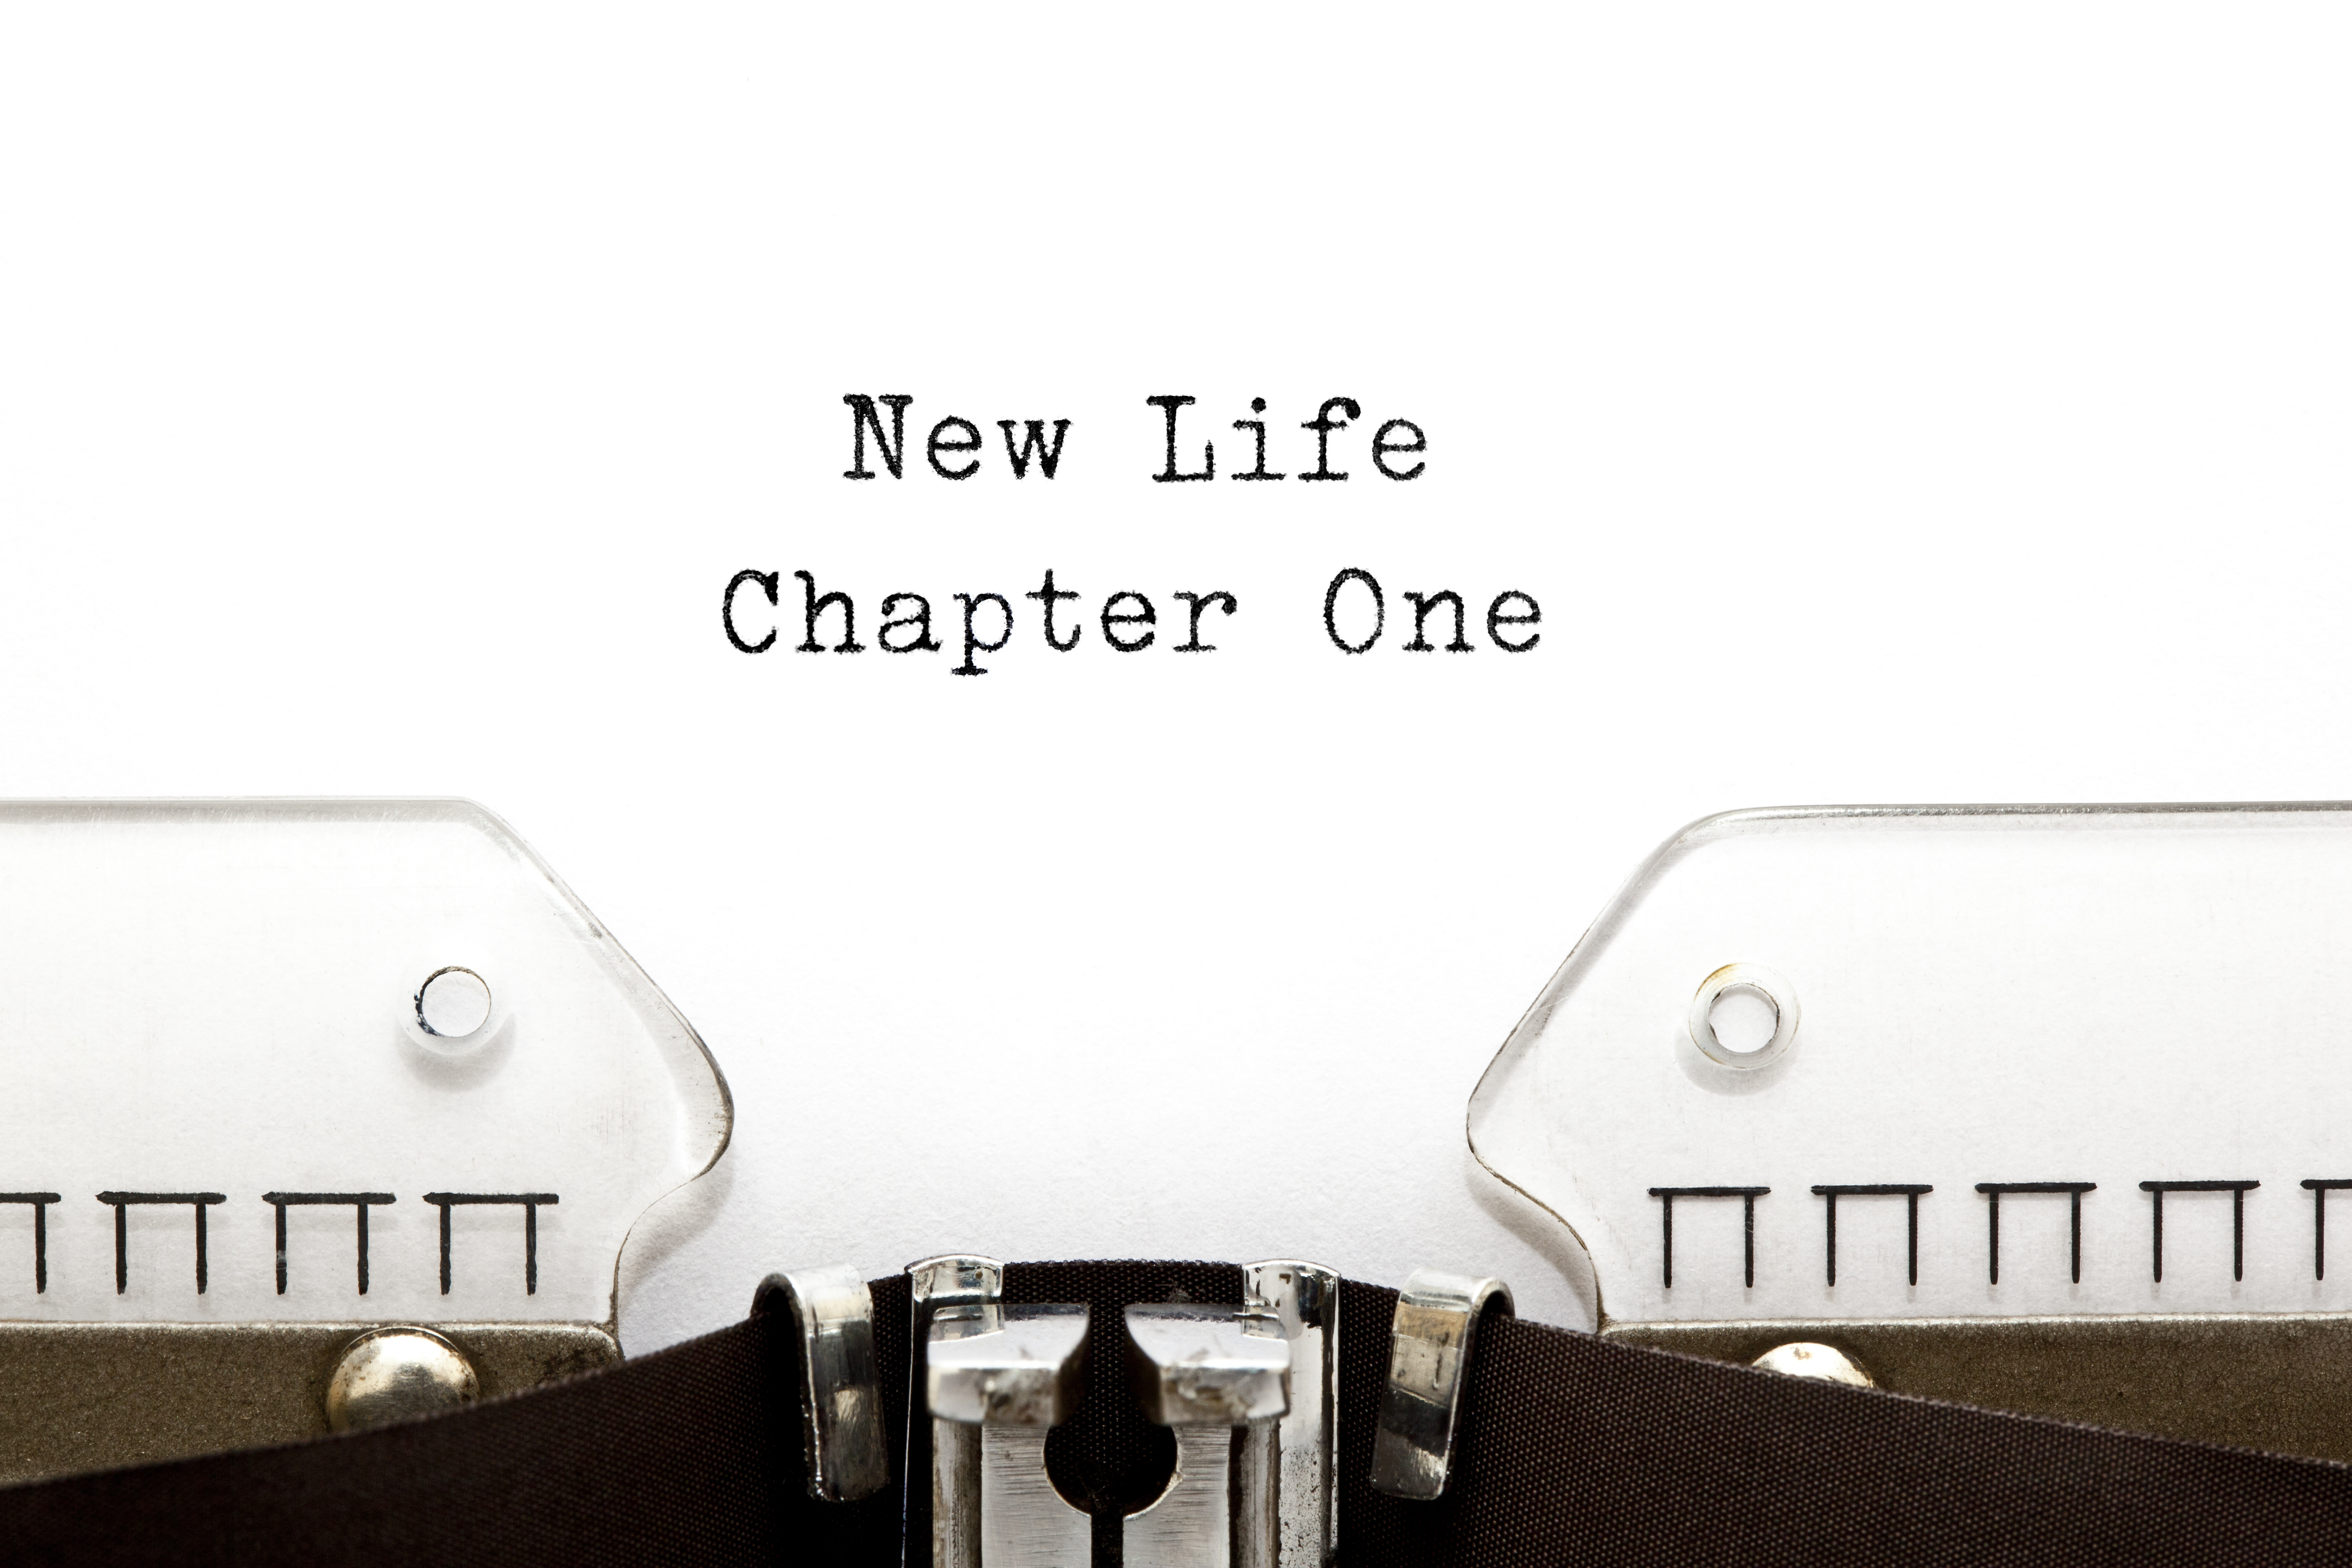 new life, new perspective, changing our thoughts, prioritizing positivity, gratitude